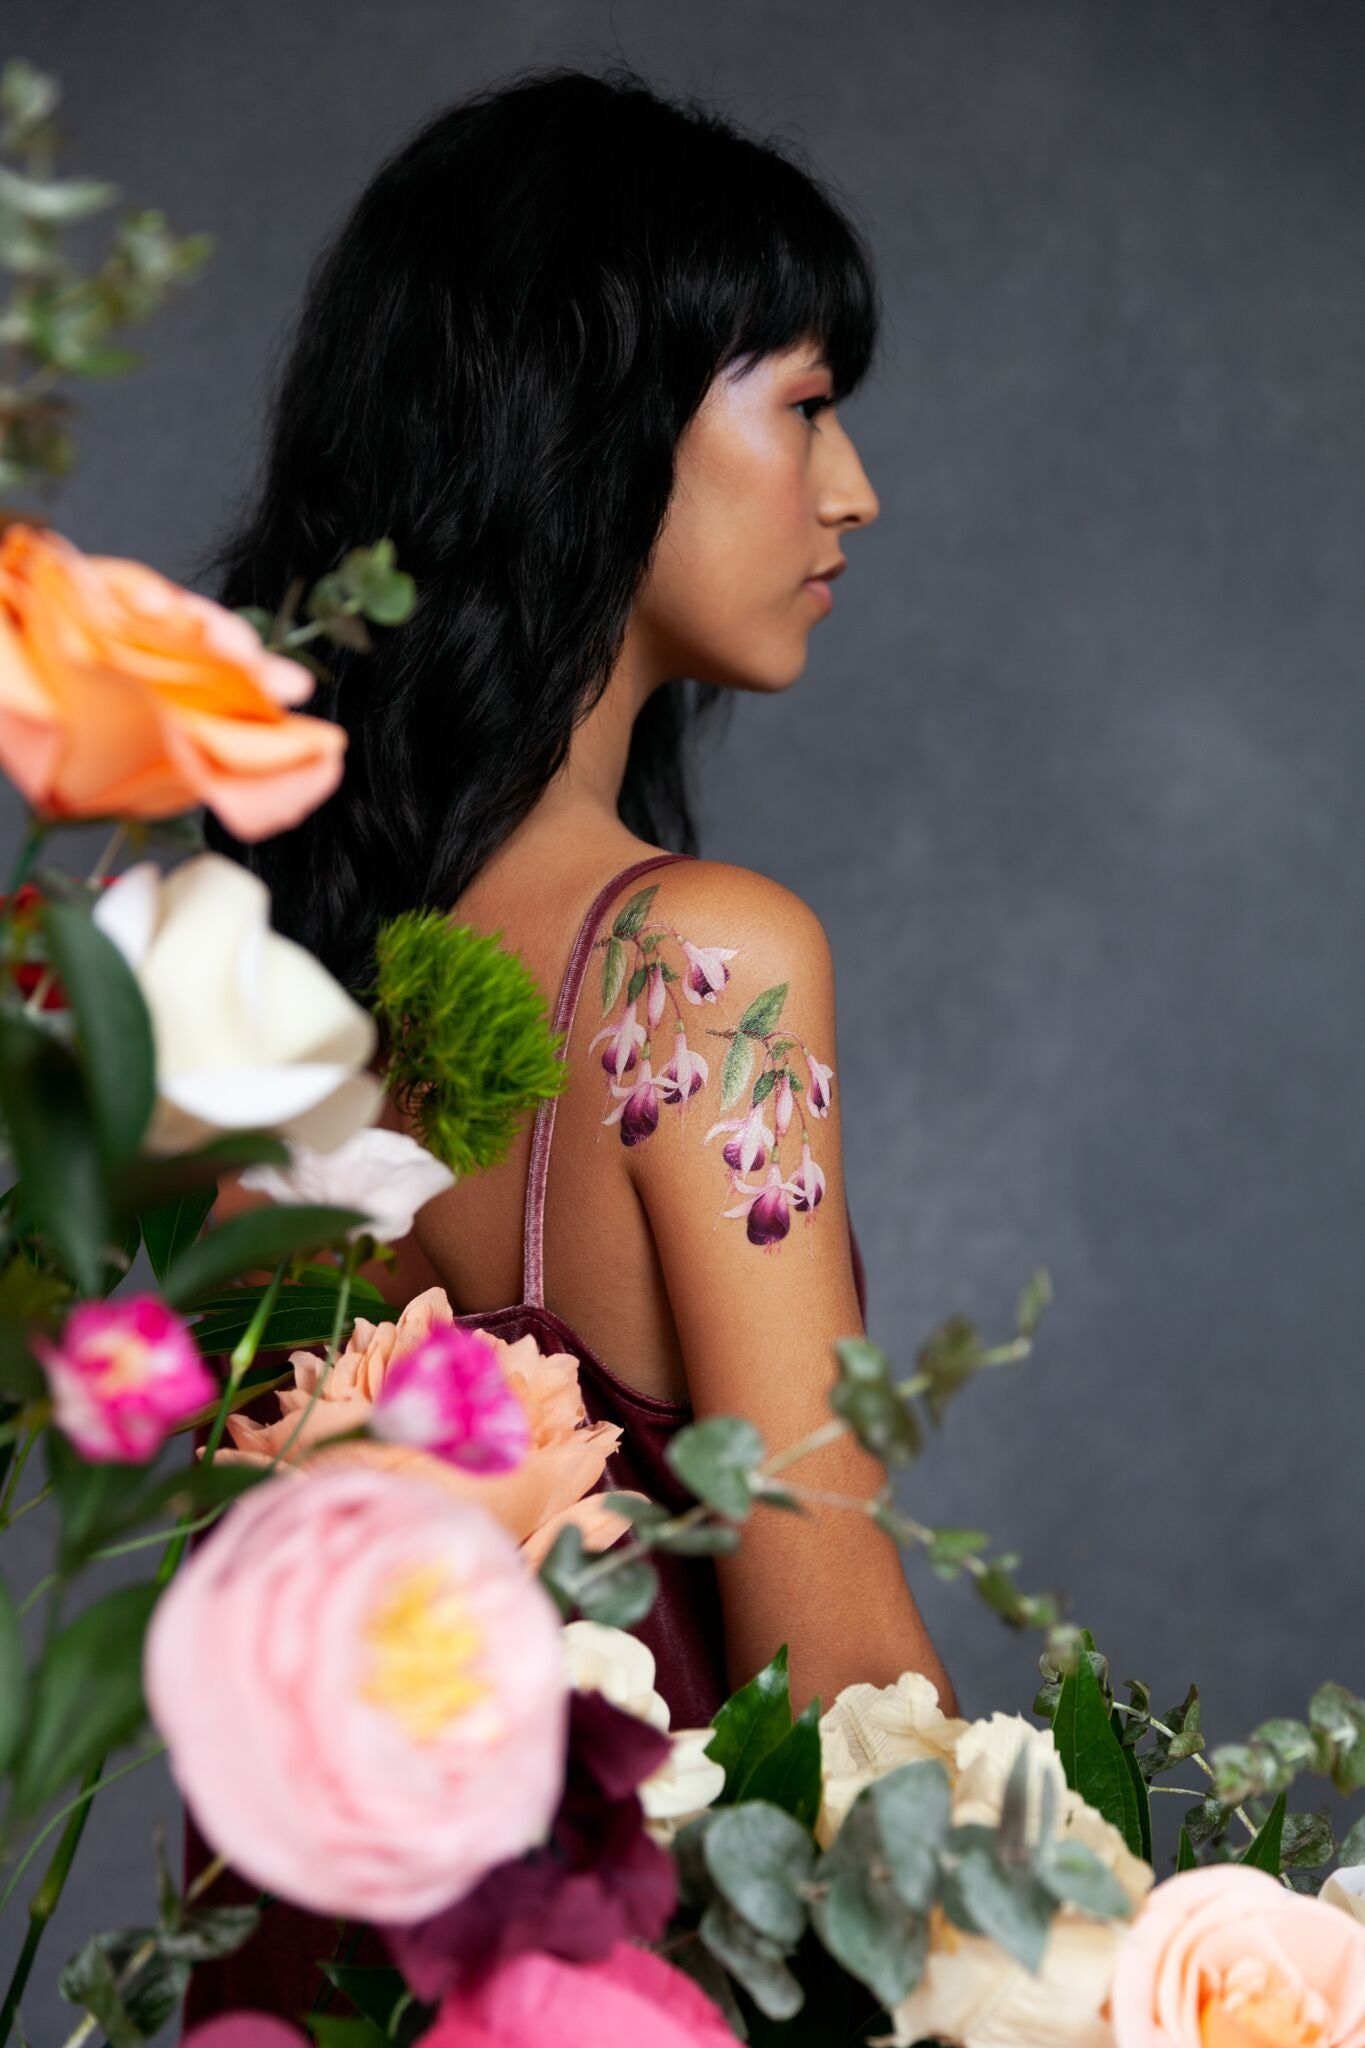 d9453c058 Tattoos by Tattly. Temporary and superb... - vincent-jeannerot ...